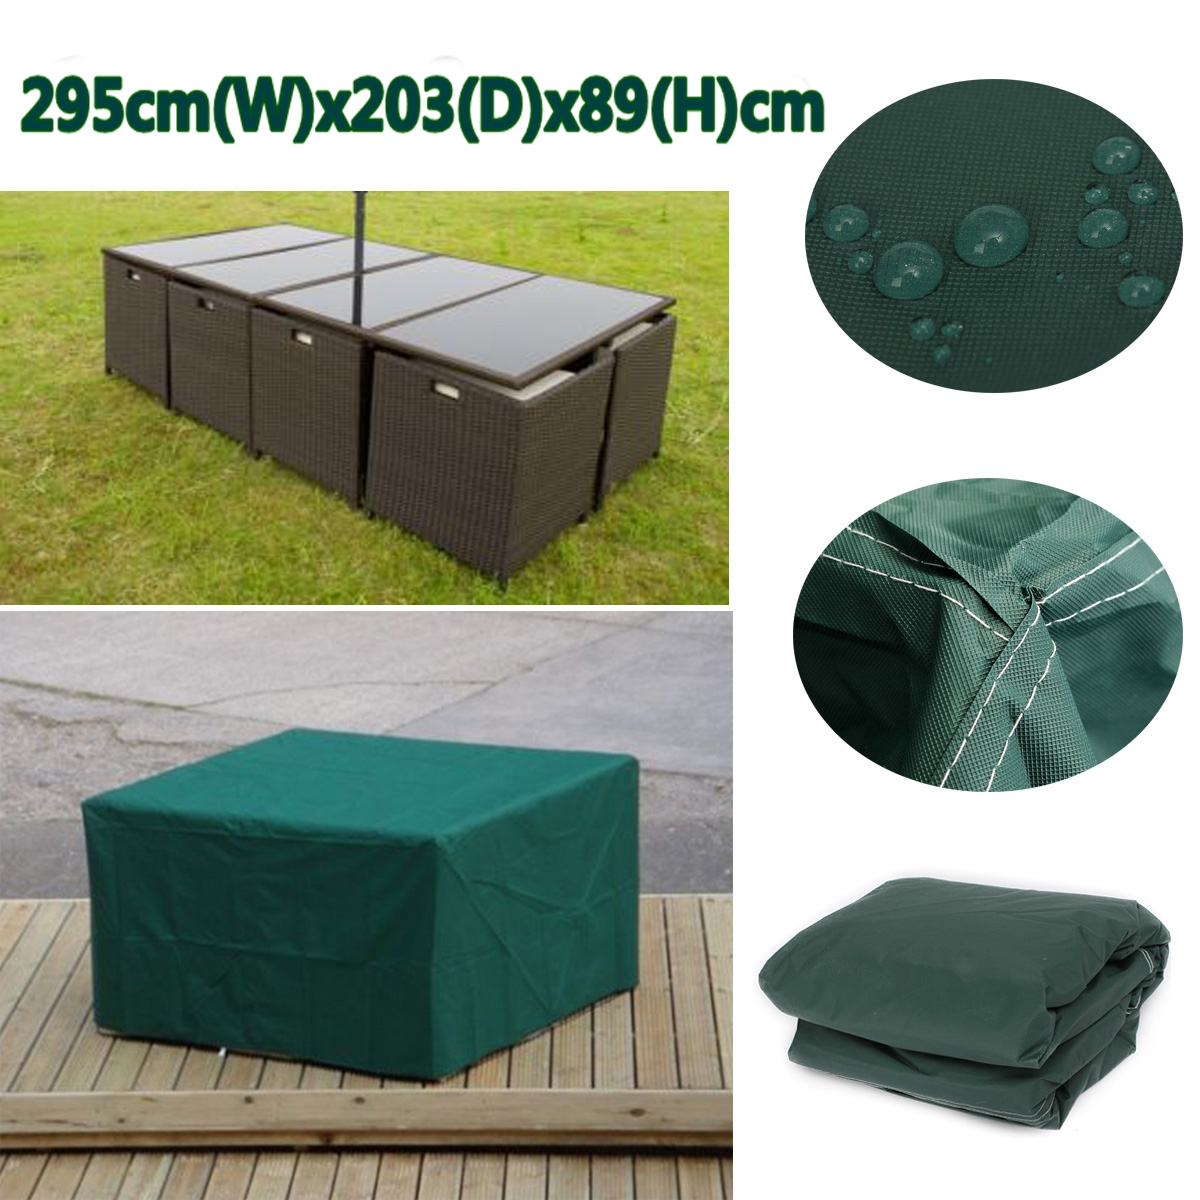 Outdoor Furniture Covers Singapore: 295x203x89 Outdoor Furniture Cover Waterproof Patio Table